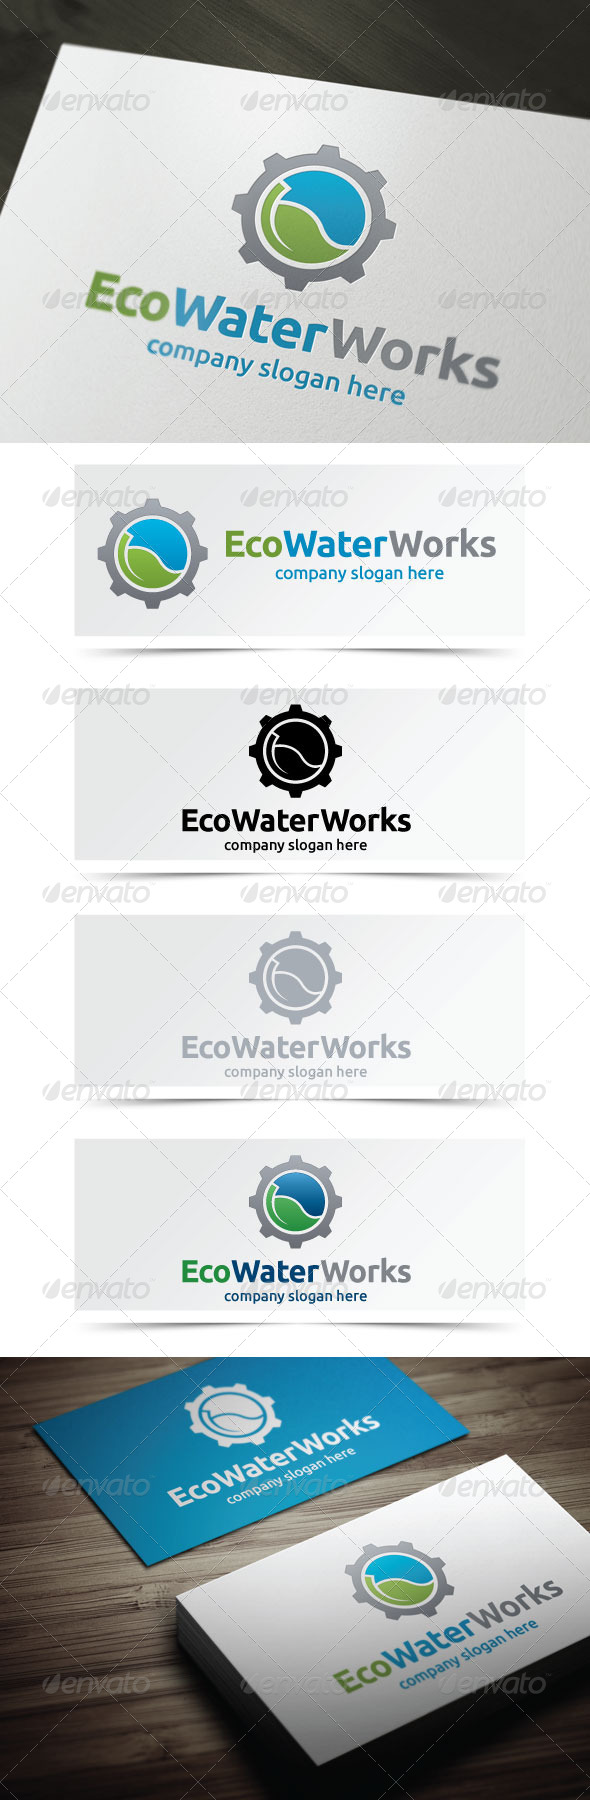 GraphicRiver Eco Water Works 4913359